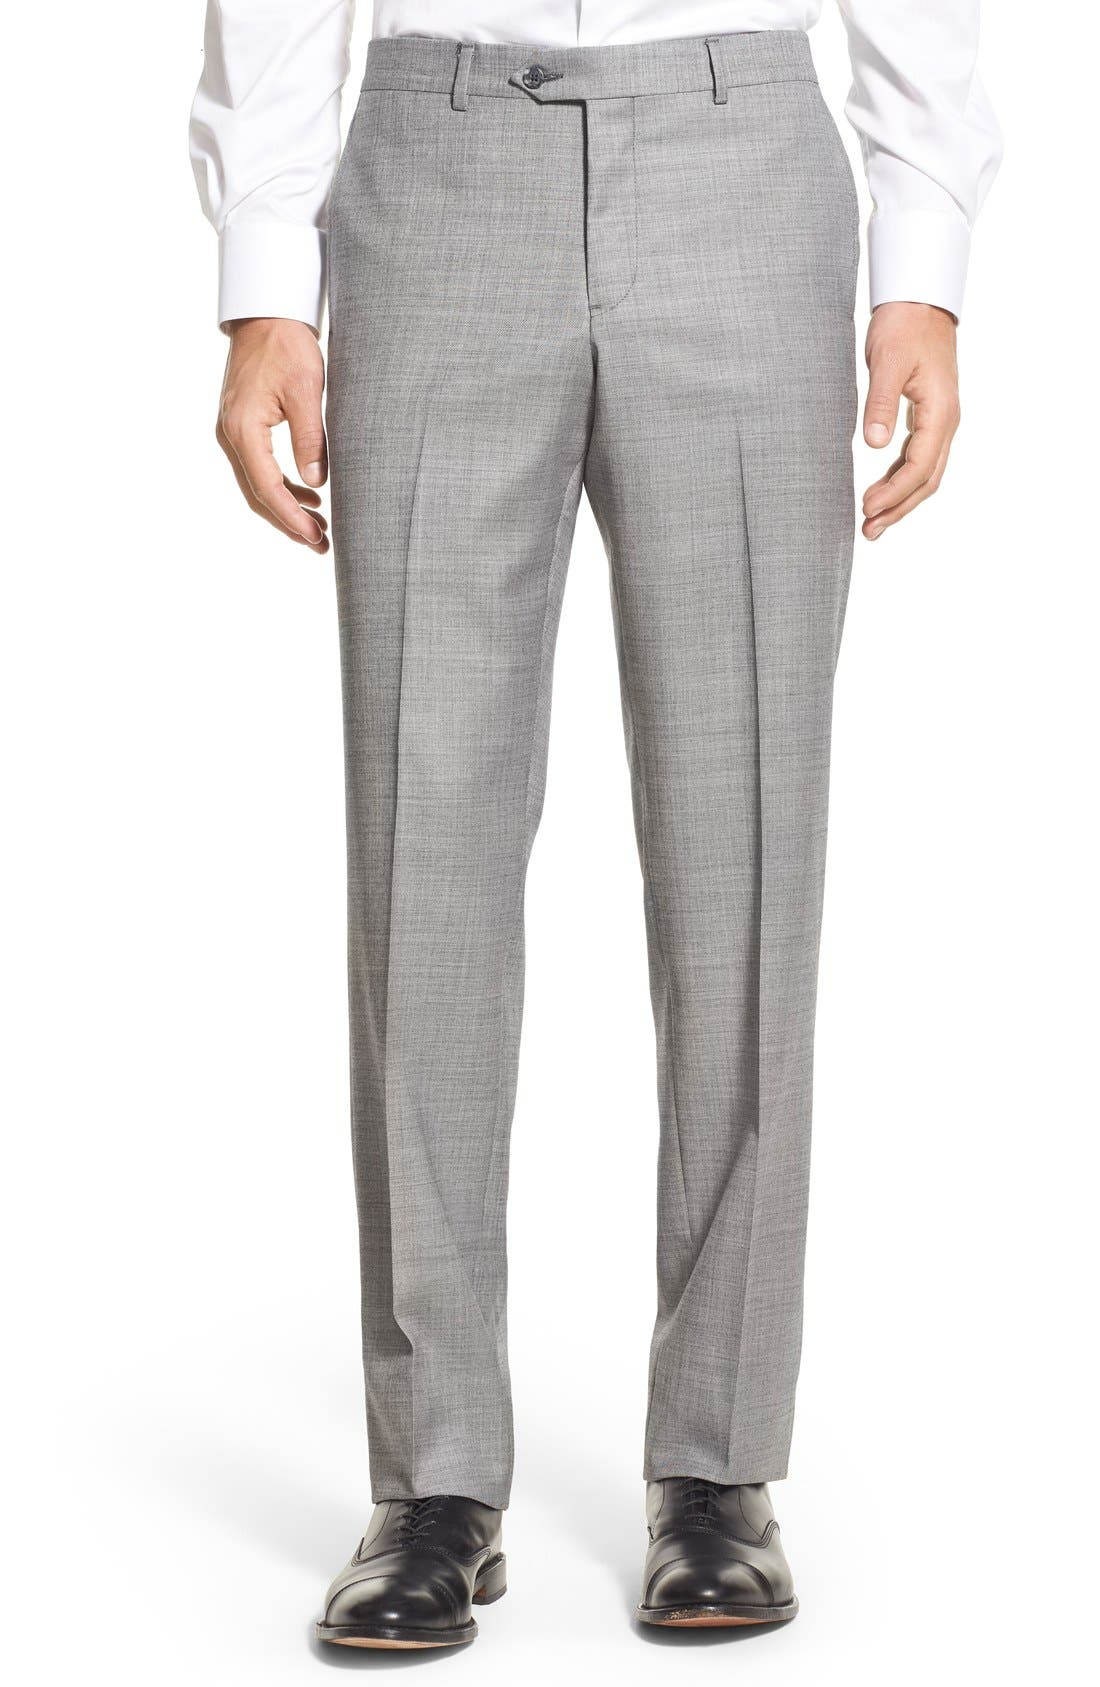 Main Image - Nordstrom Men's Shop Flat Front Sharkskin Wool Trousers